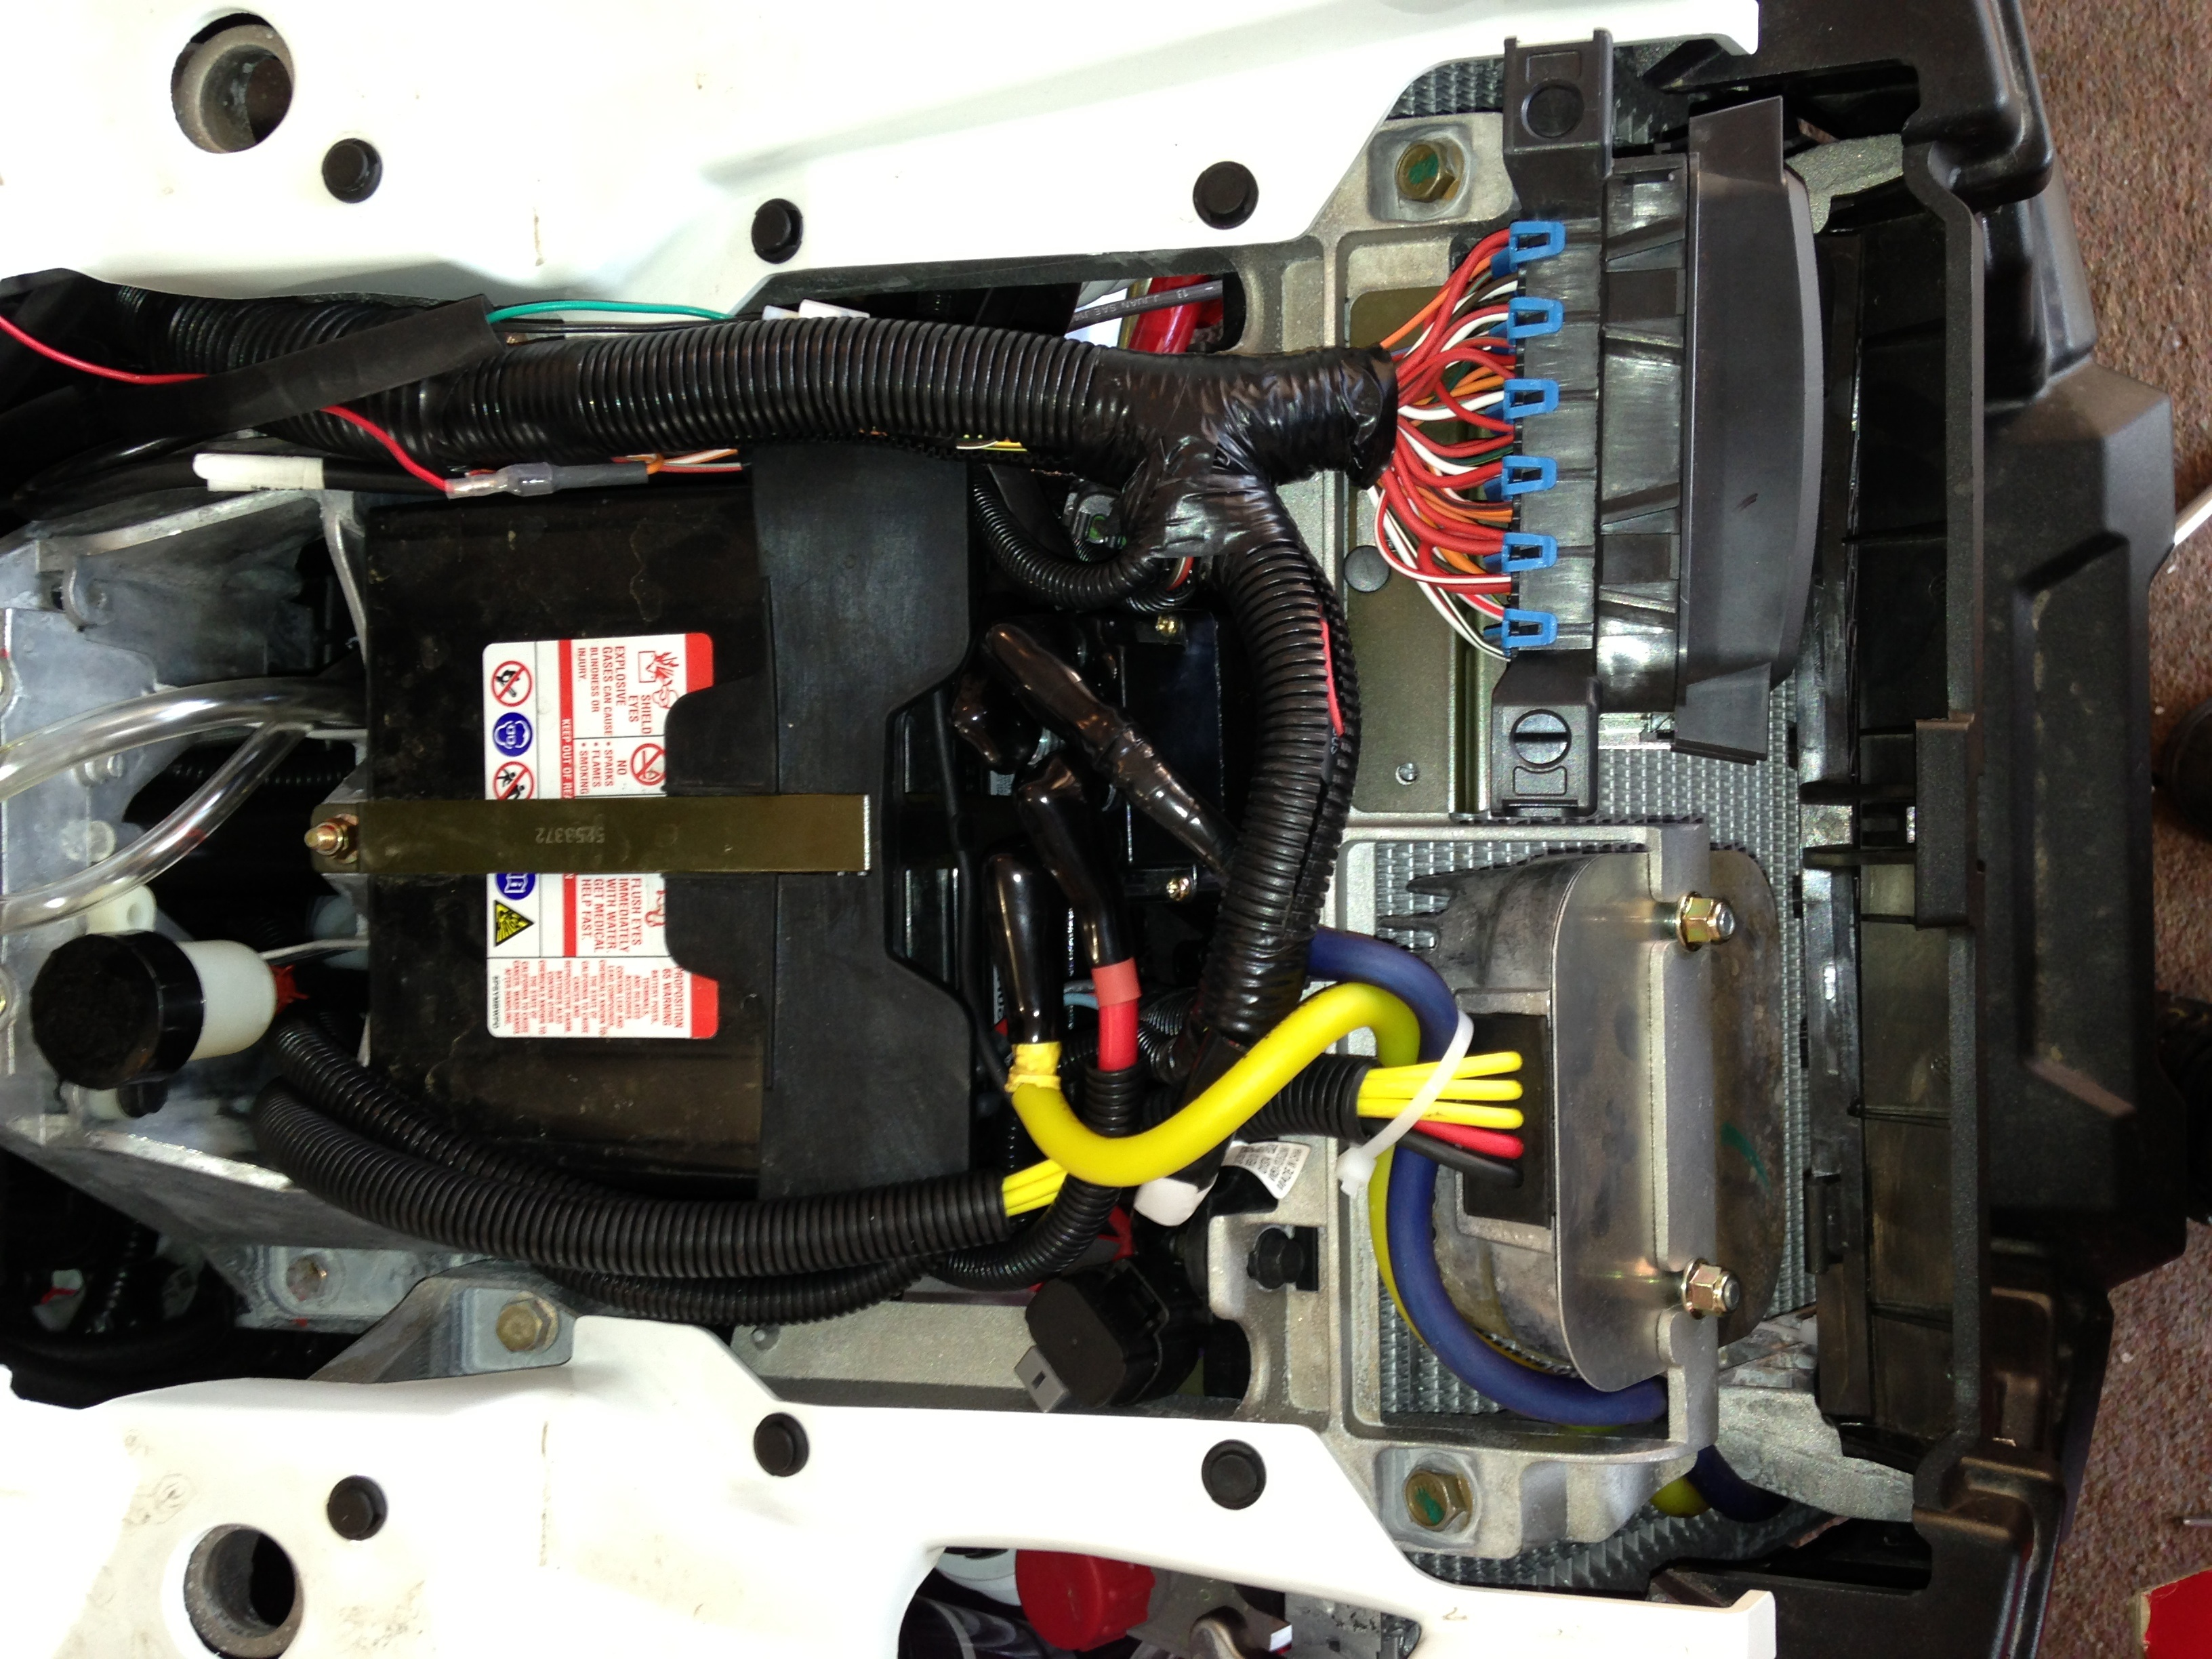 18925d1401785976 polaris hd 3500 winch install please help image polaris hd 3500 winch install? please help polaris atv forum Polaris Winch Wiring Diagram at readyjetset.co